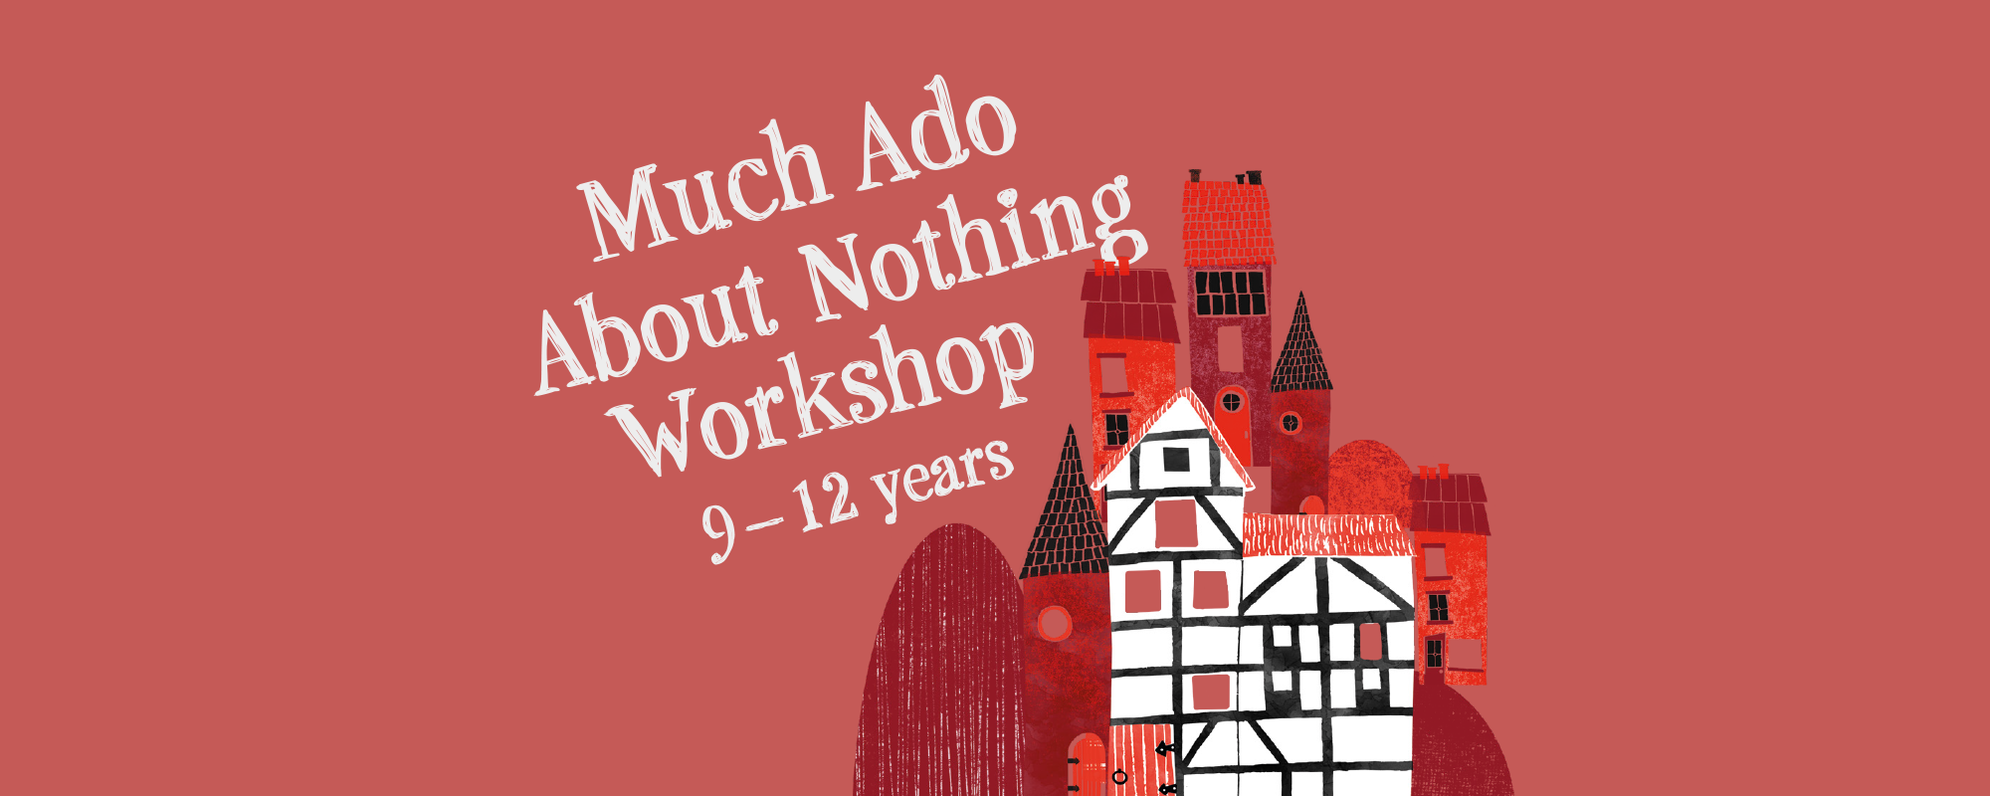 Text: Much Ado About Nothing Workshop Illustration of the Globe